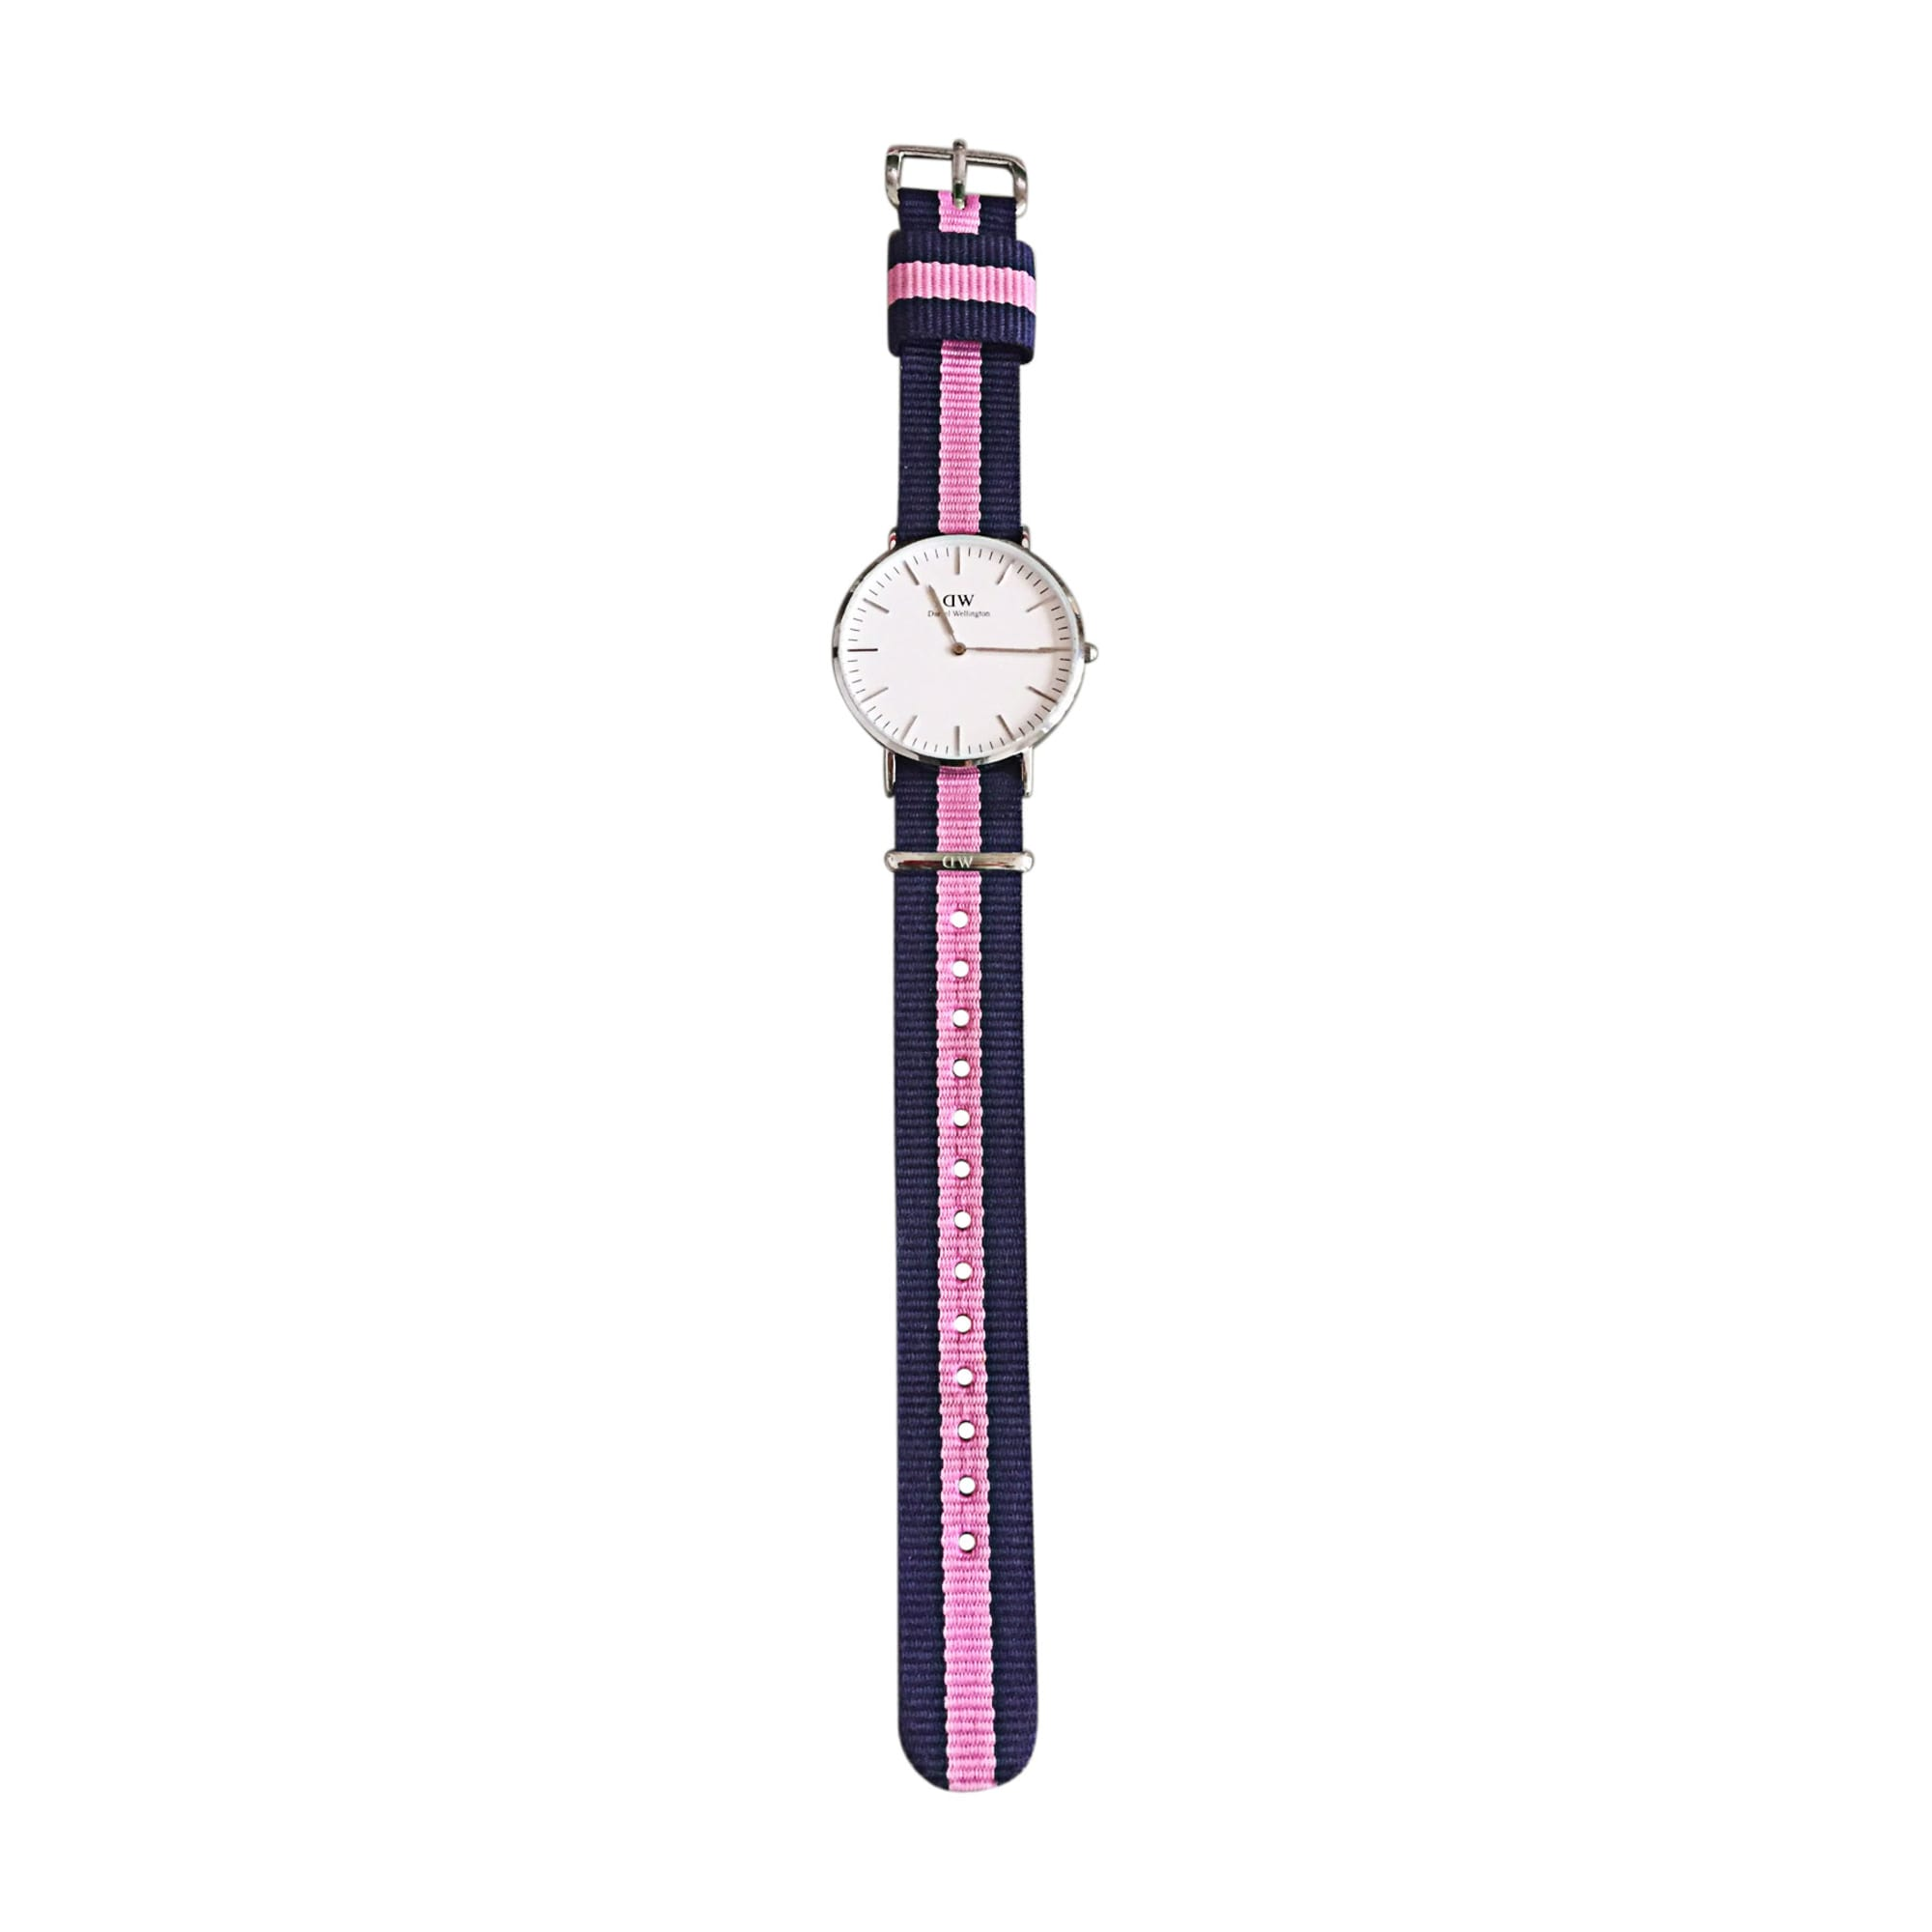 Montre Style Marin Montre Au Poignet Daniel Wellington Bleu Marine And Rose